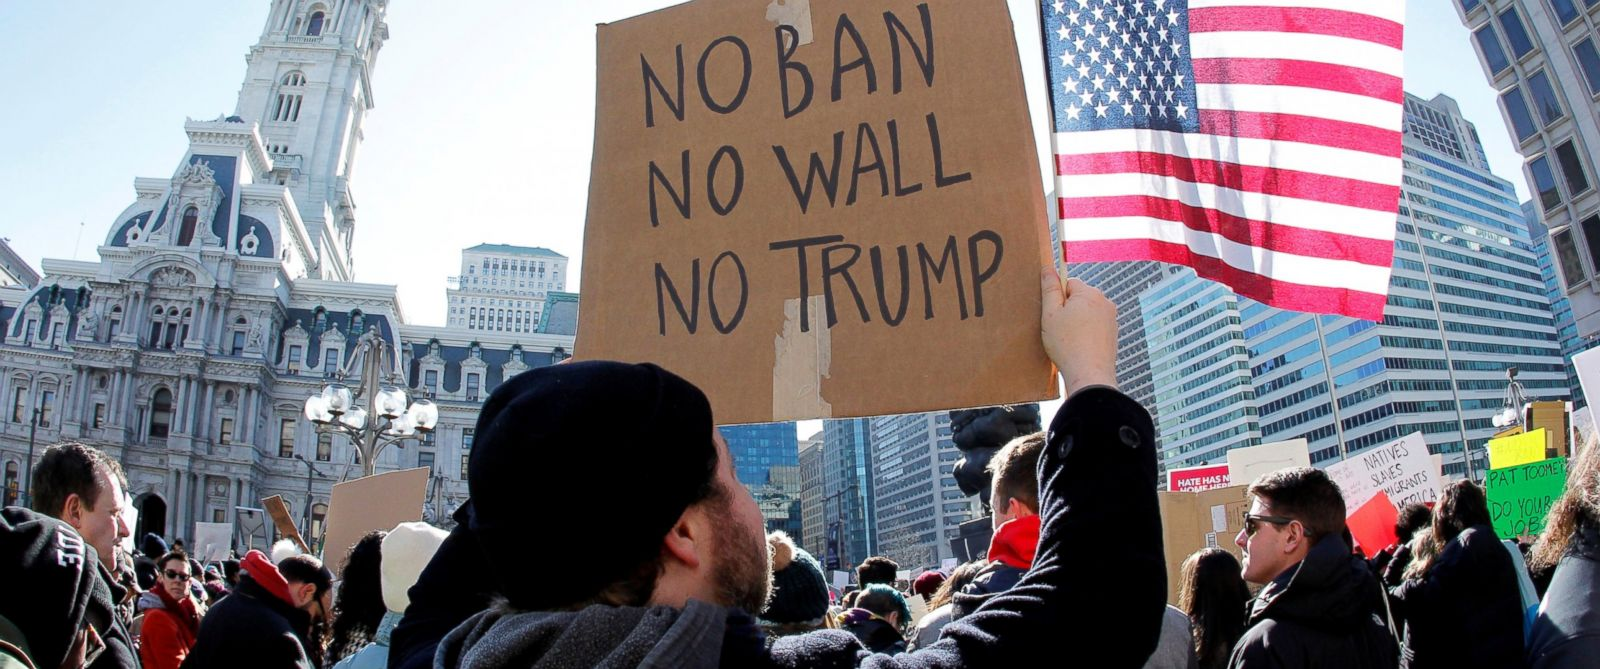 Thousands Join New Protests Against Trump S Immigration